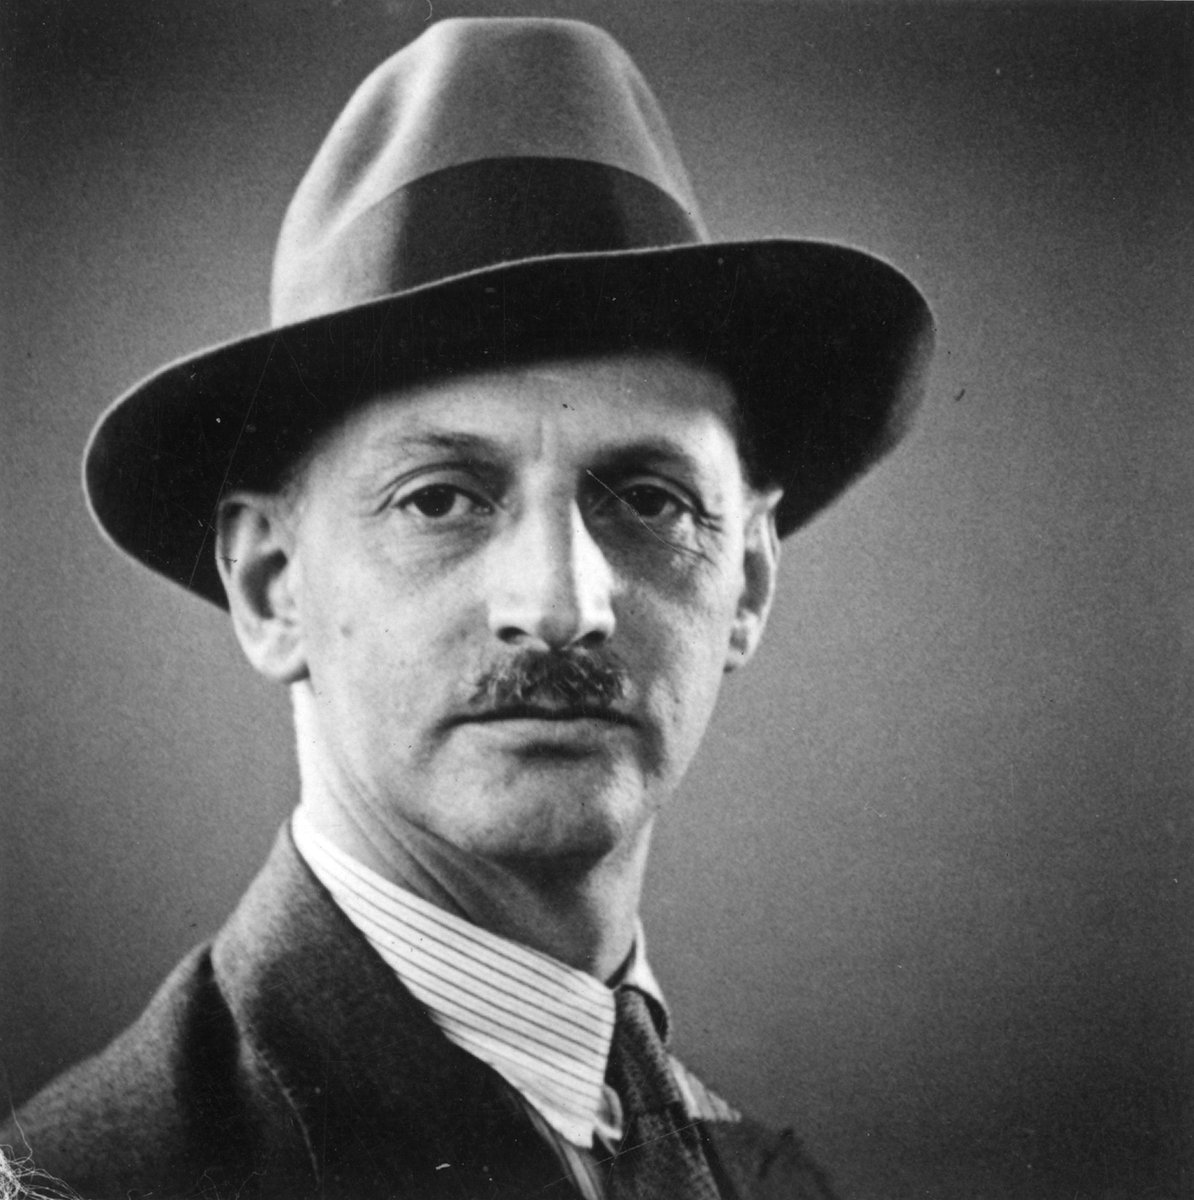 #OttoFrank died on this day in 1980. He is best known as #AnneFrank 's father. Without him, Annes diary would not have been published, and there would not have been an #AnneFrankHouse. But of course, he was much more than Annes father. Read more: bit.ly/2yrkUzT